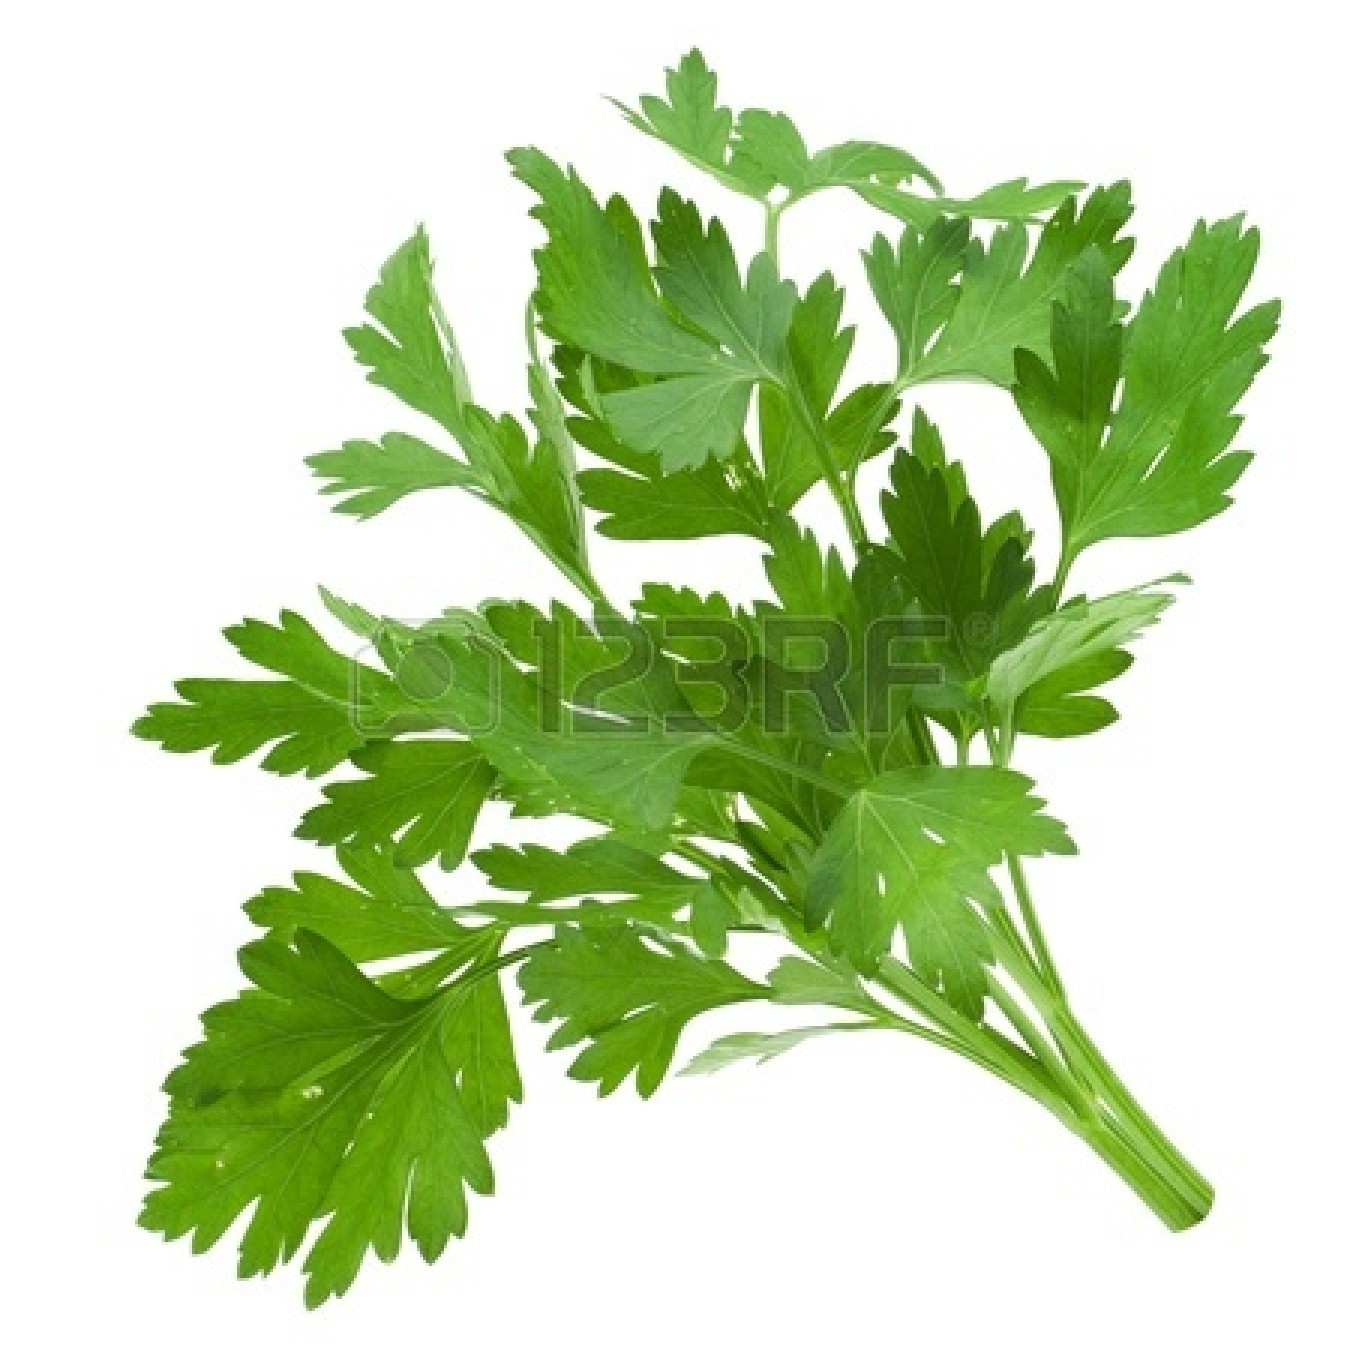 Parsley 20clipart Clipart Panda Free Clipart Images